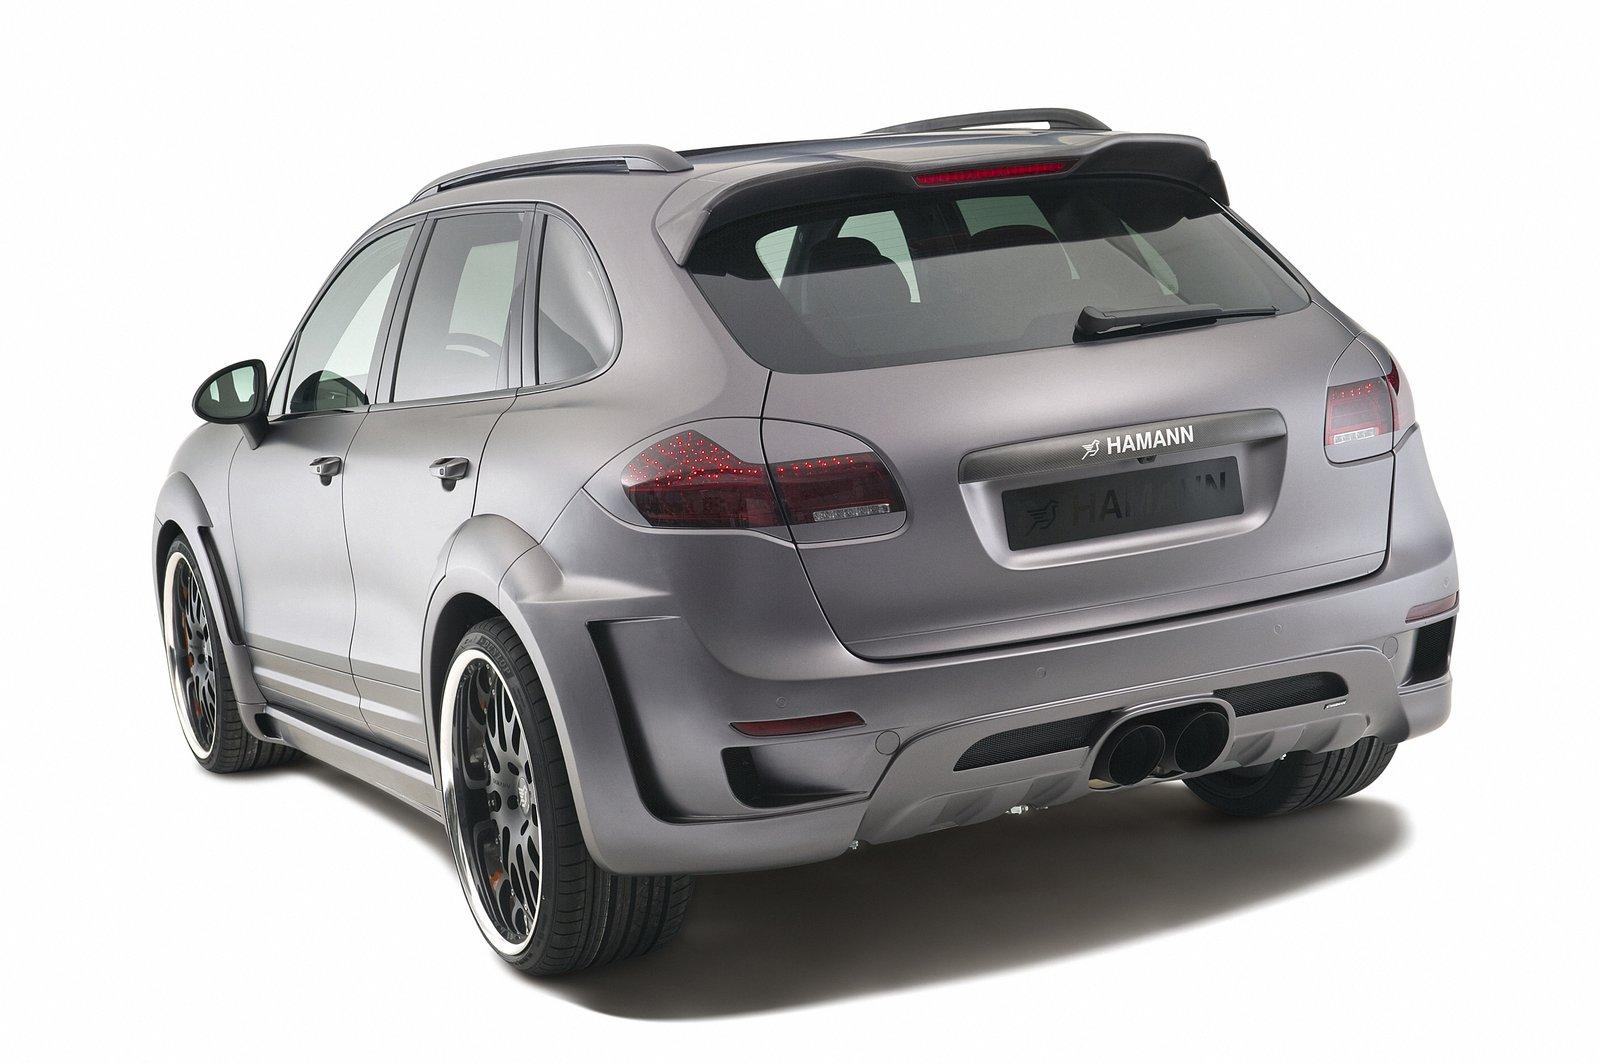 Hamann Guardian 9 The Hamann Guardian Based on the Porsche Cayenne Turbo